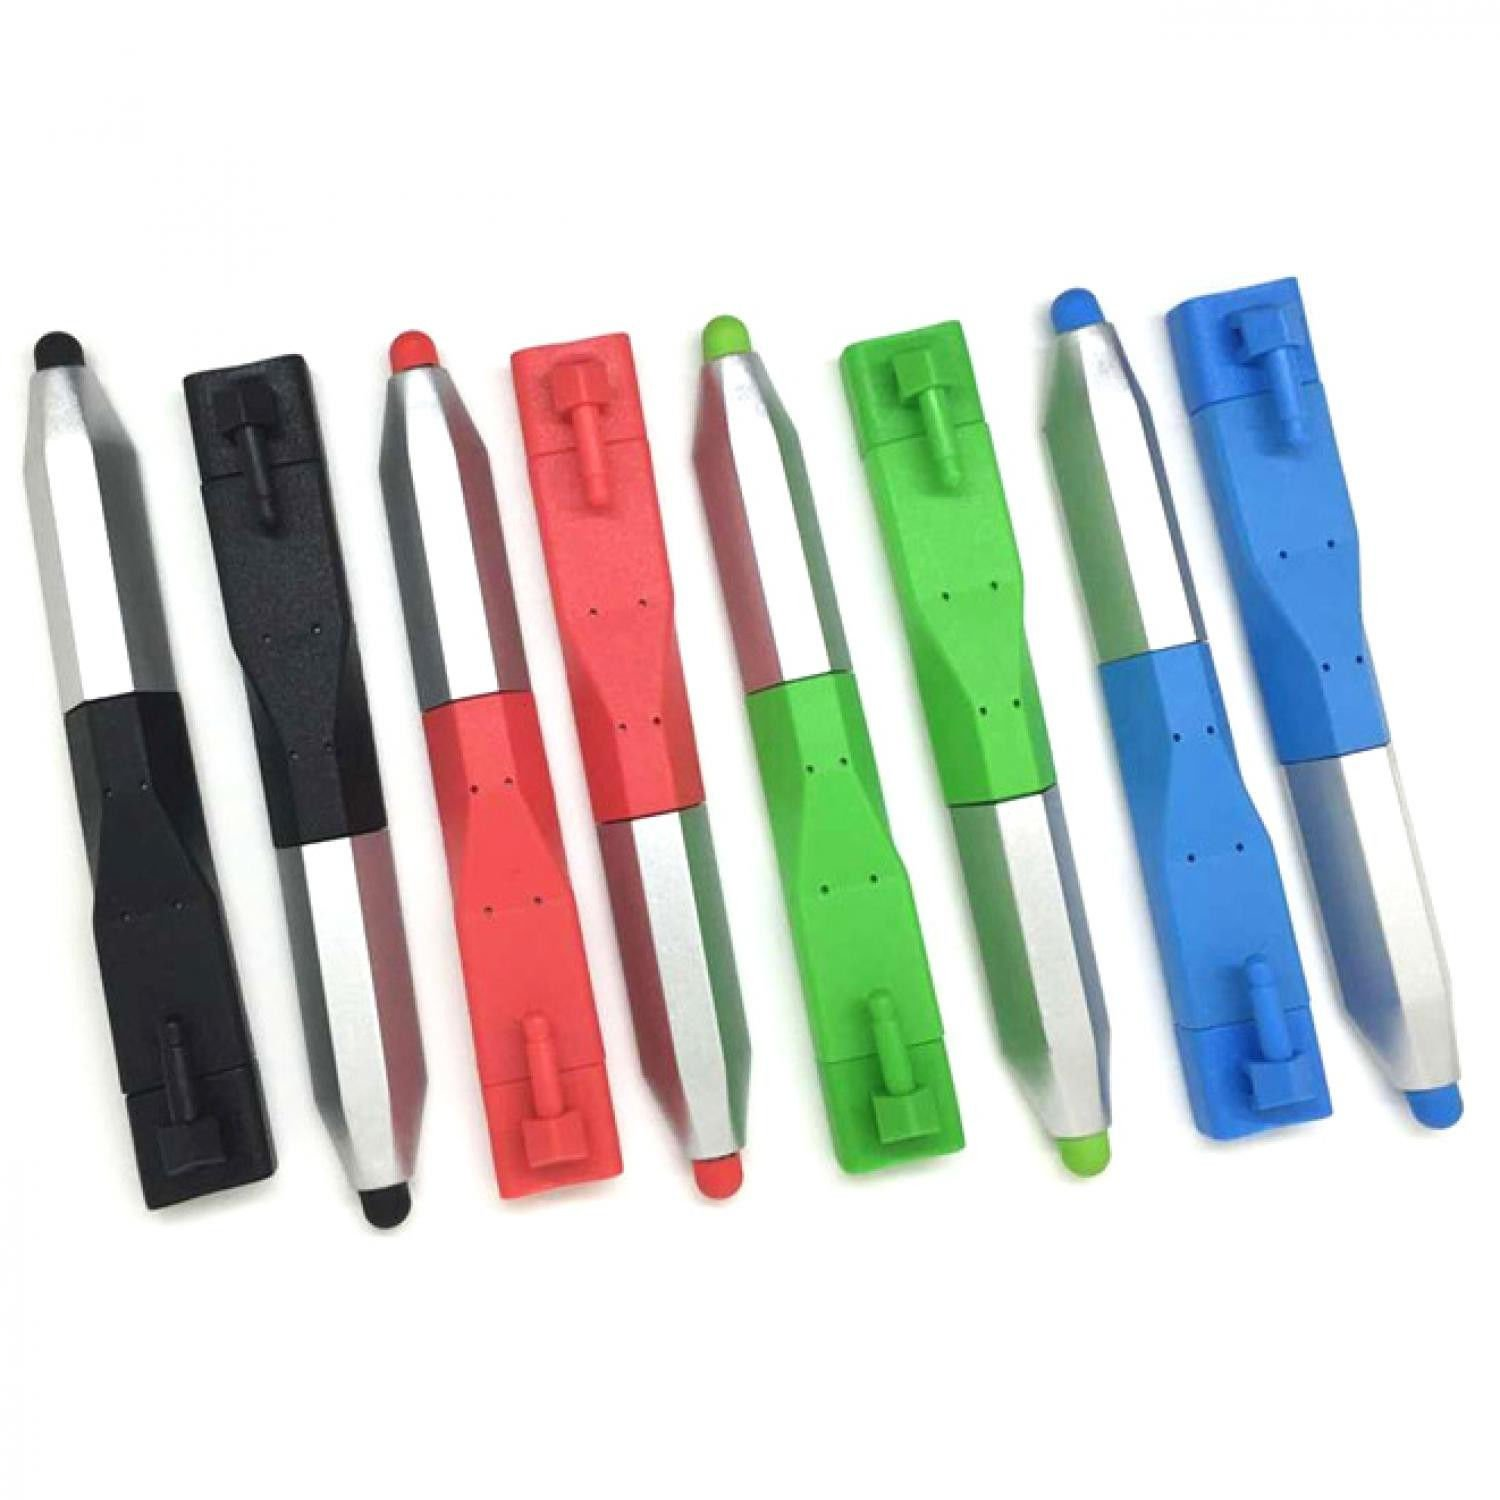 ANDROID - BLUE - 2 IN 1 - MICRO - USB CABLE - STYLUS - HTC - SAMSUNG - LG - NEW